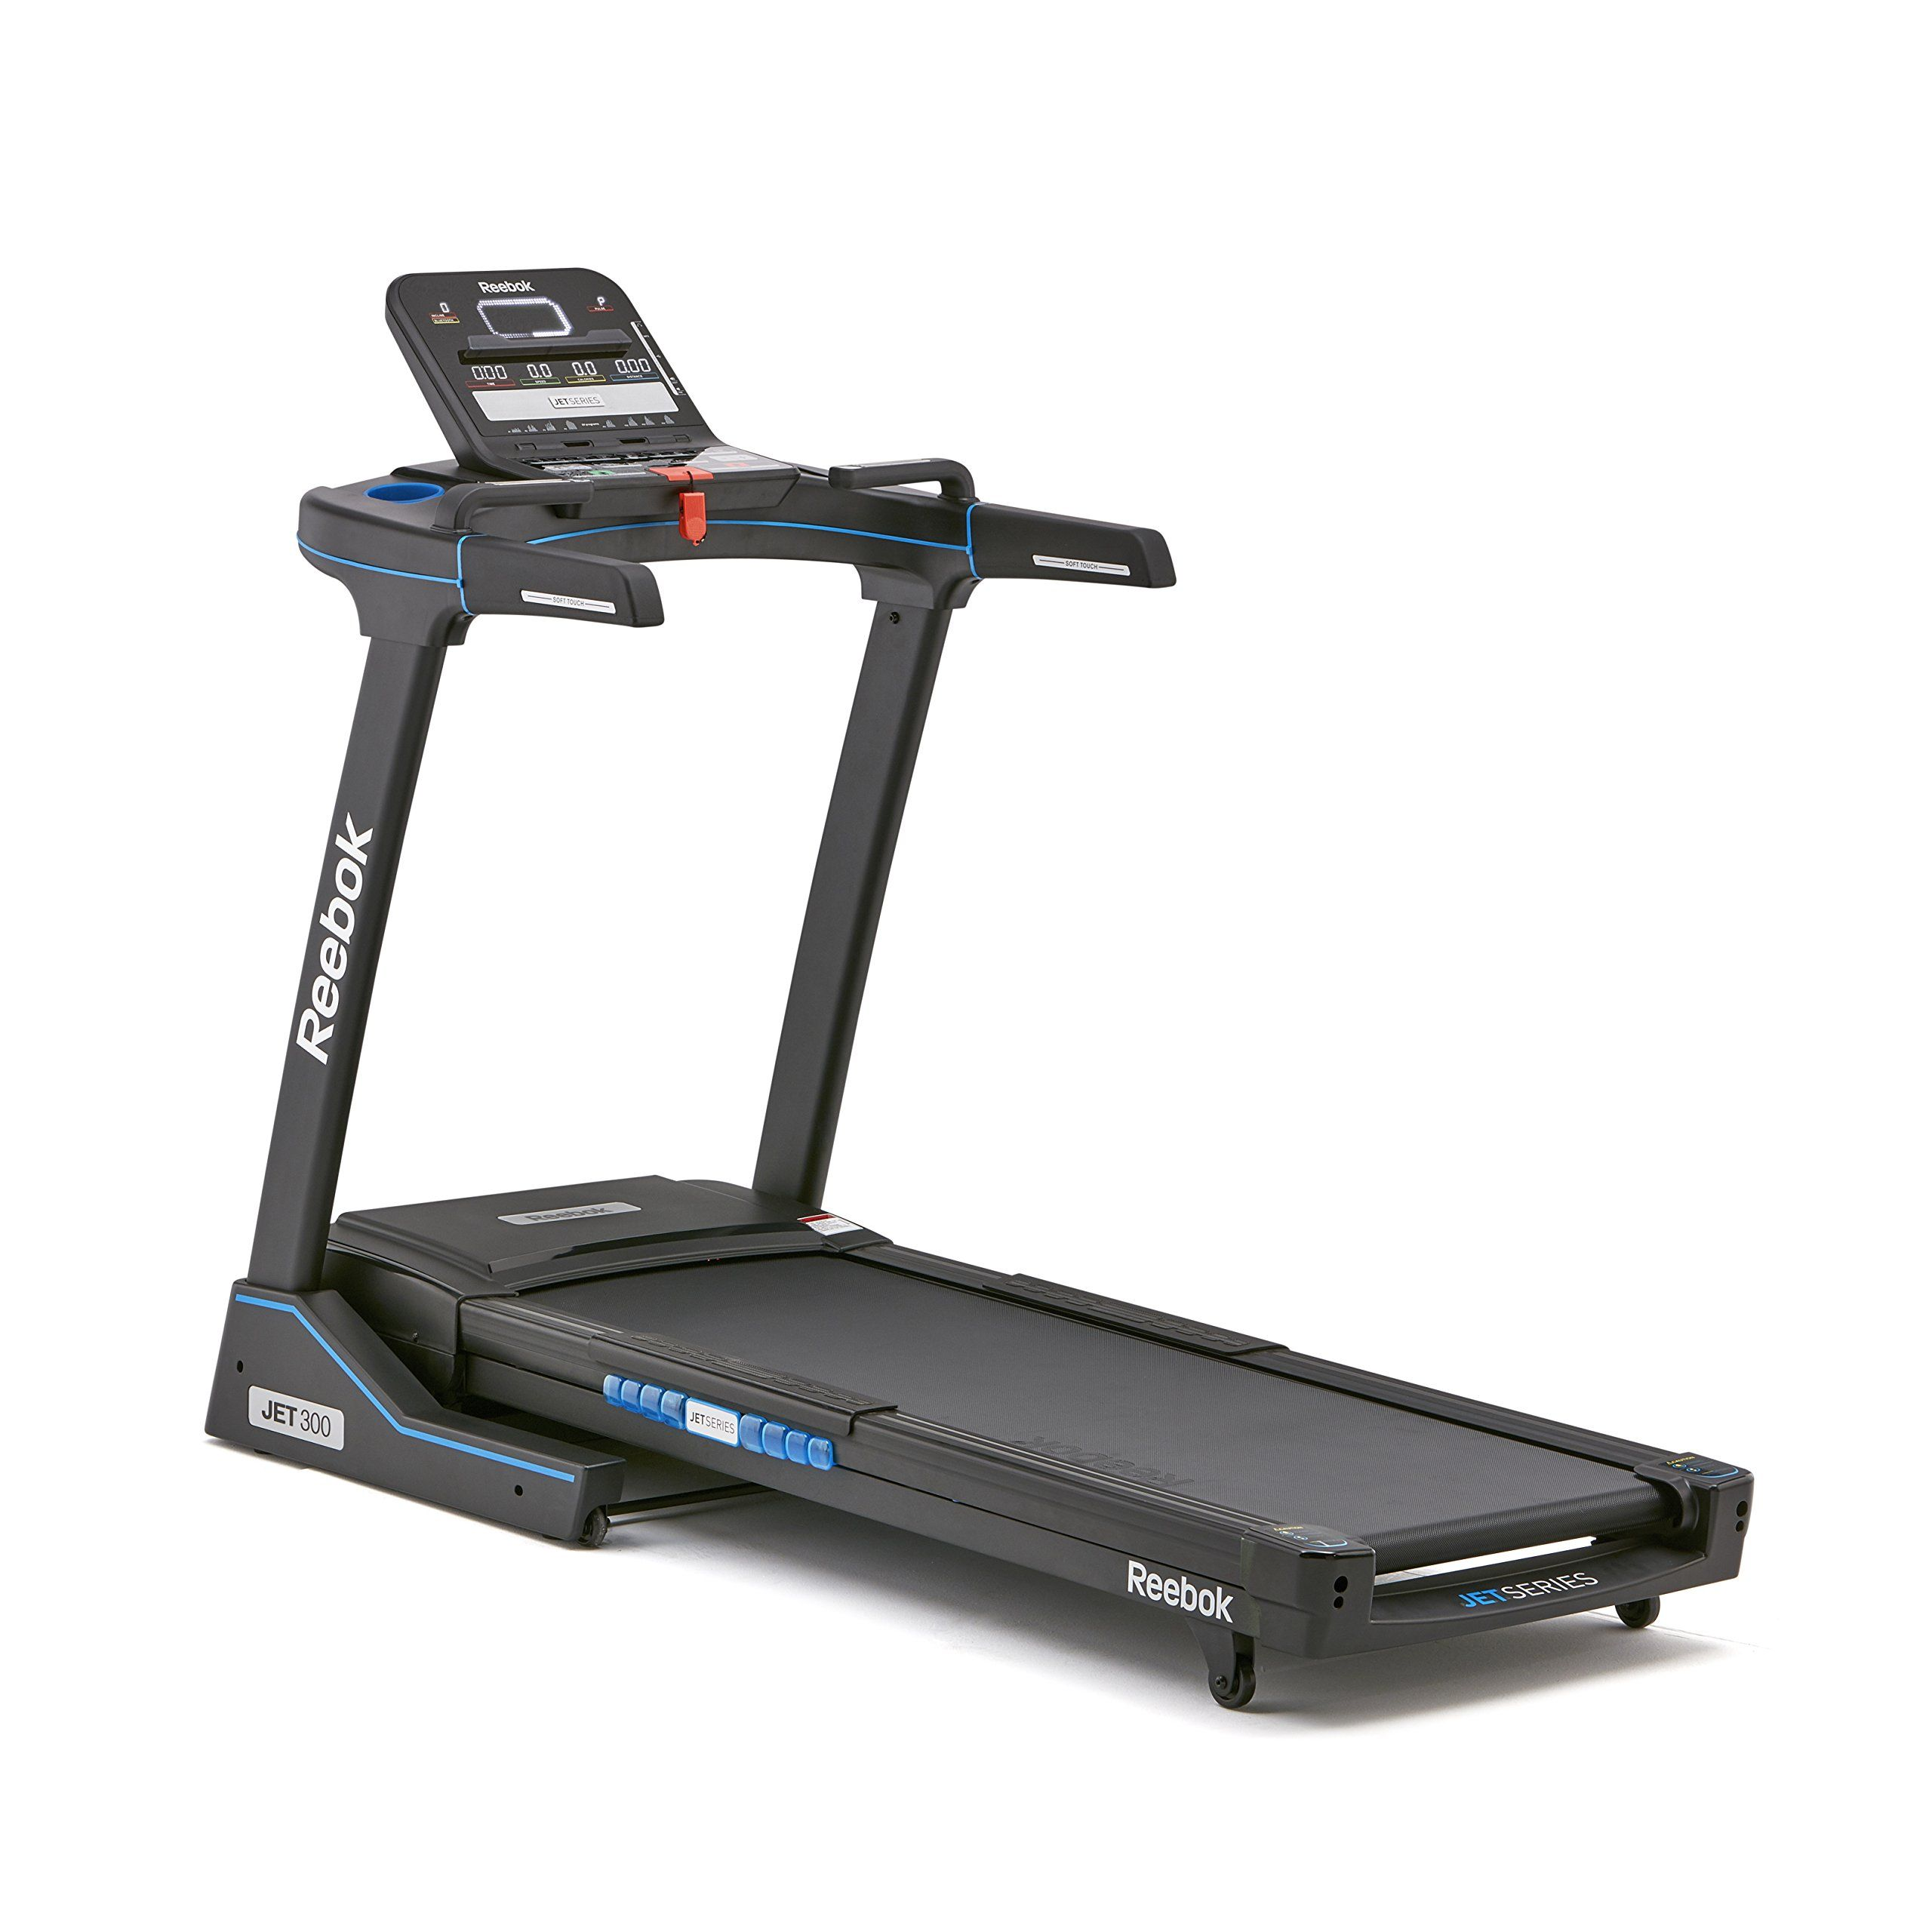 Reebok Jet 300 Treadmill *** You could learn even more